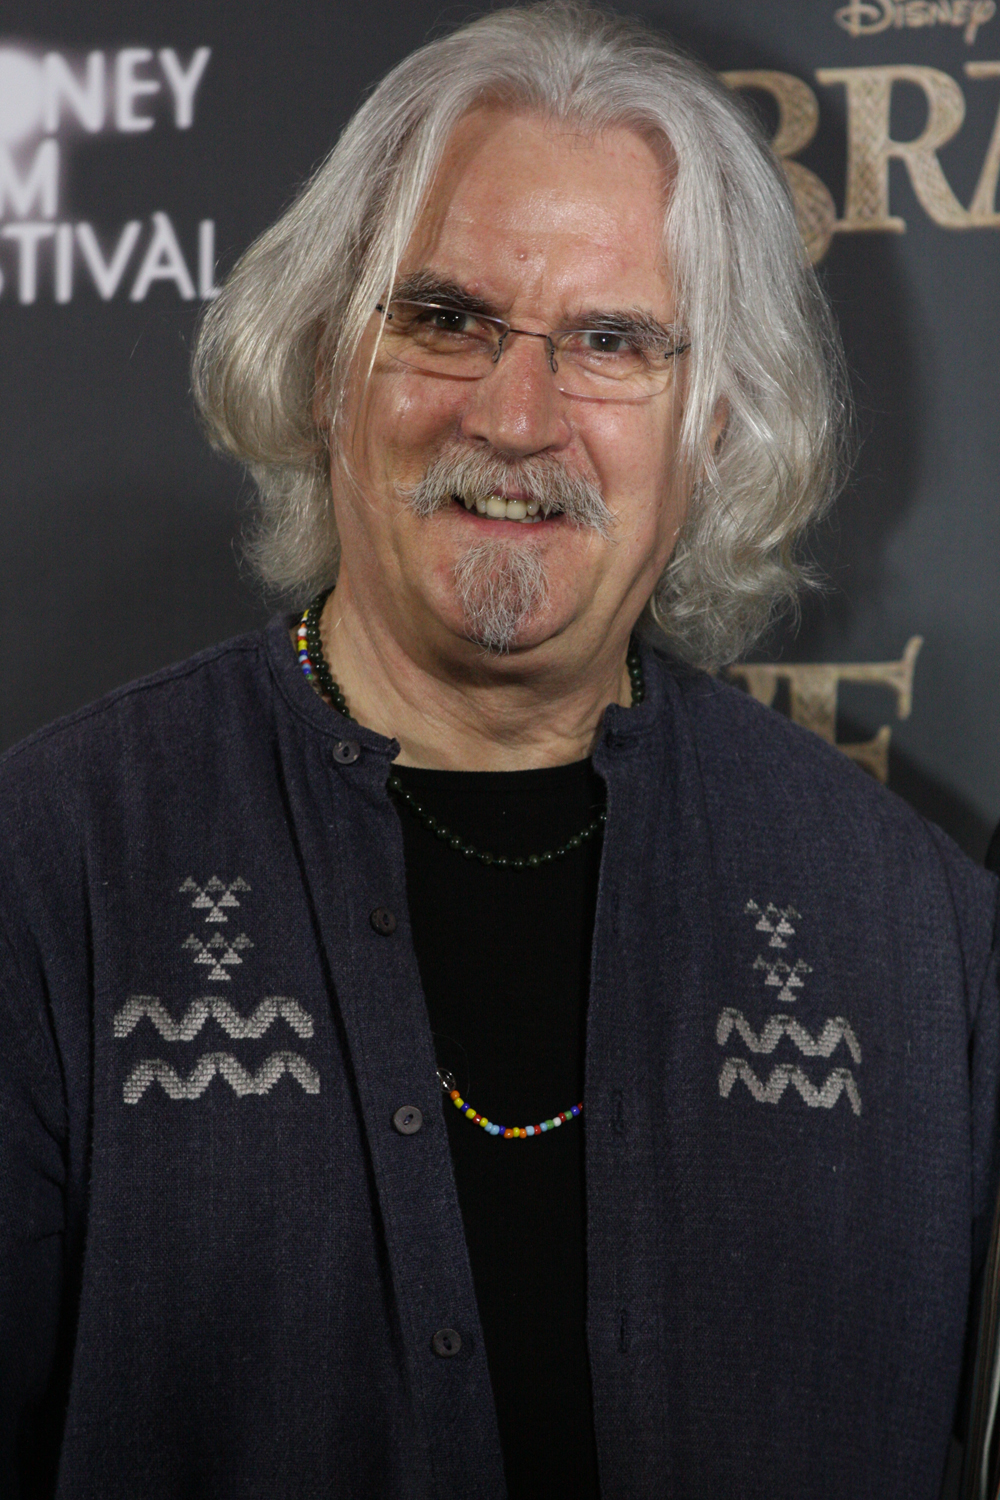 Billy Connolly World Tour Of Scotland Stream